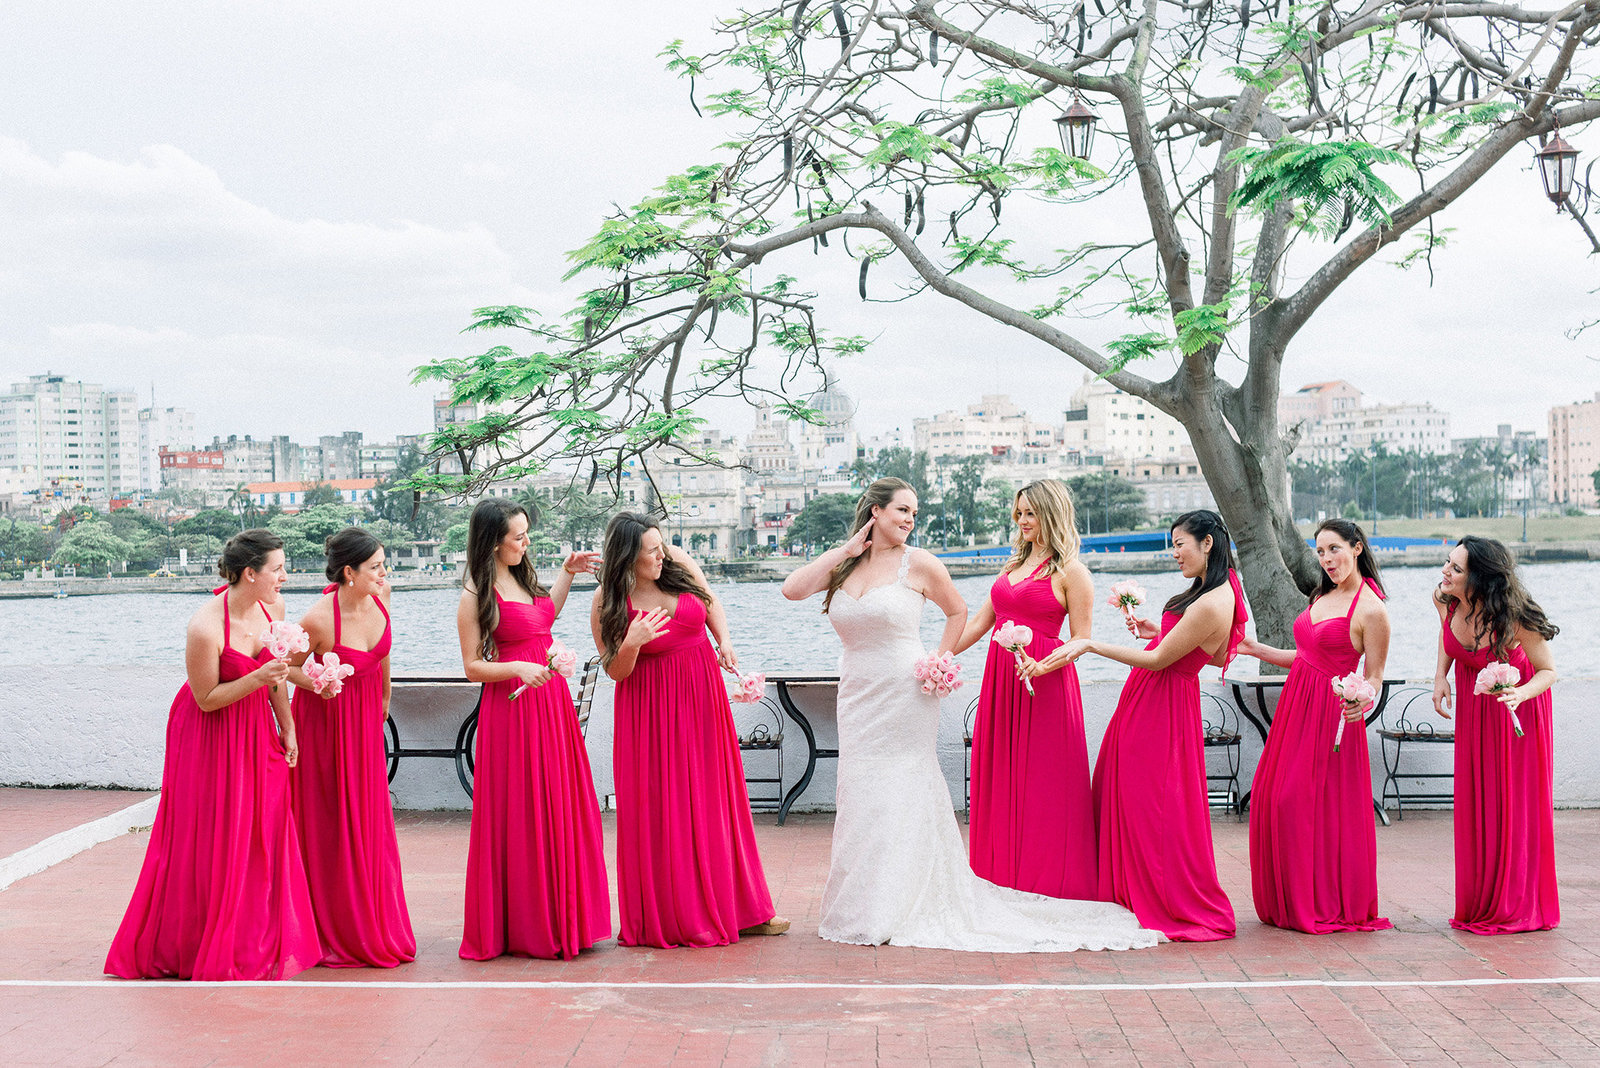 20150328-Pura-Soul-Photo-Cuba-Wedding-29